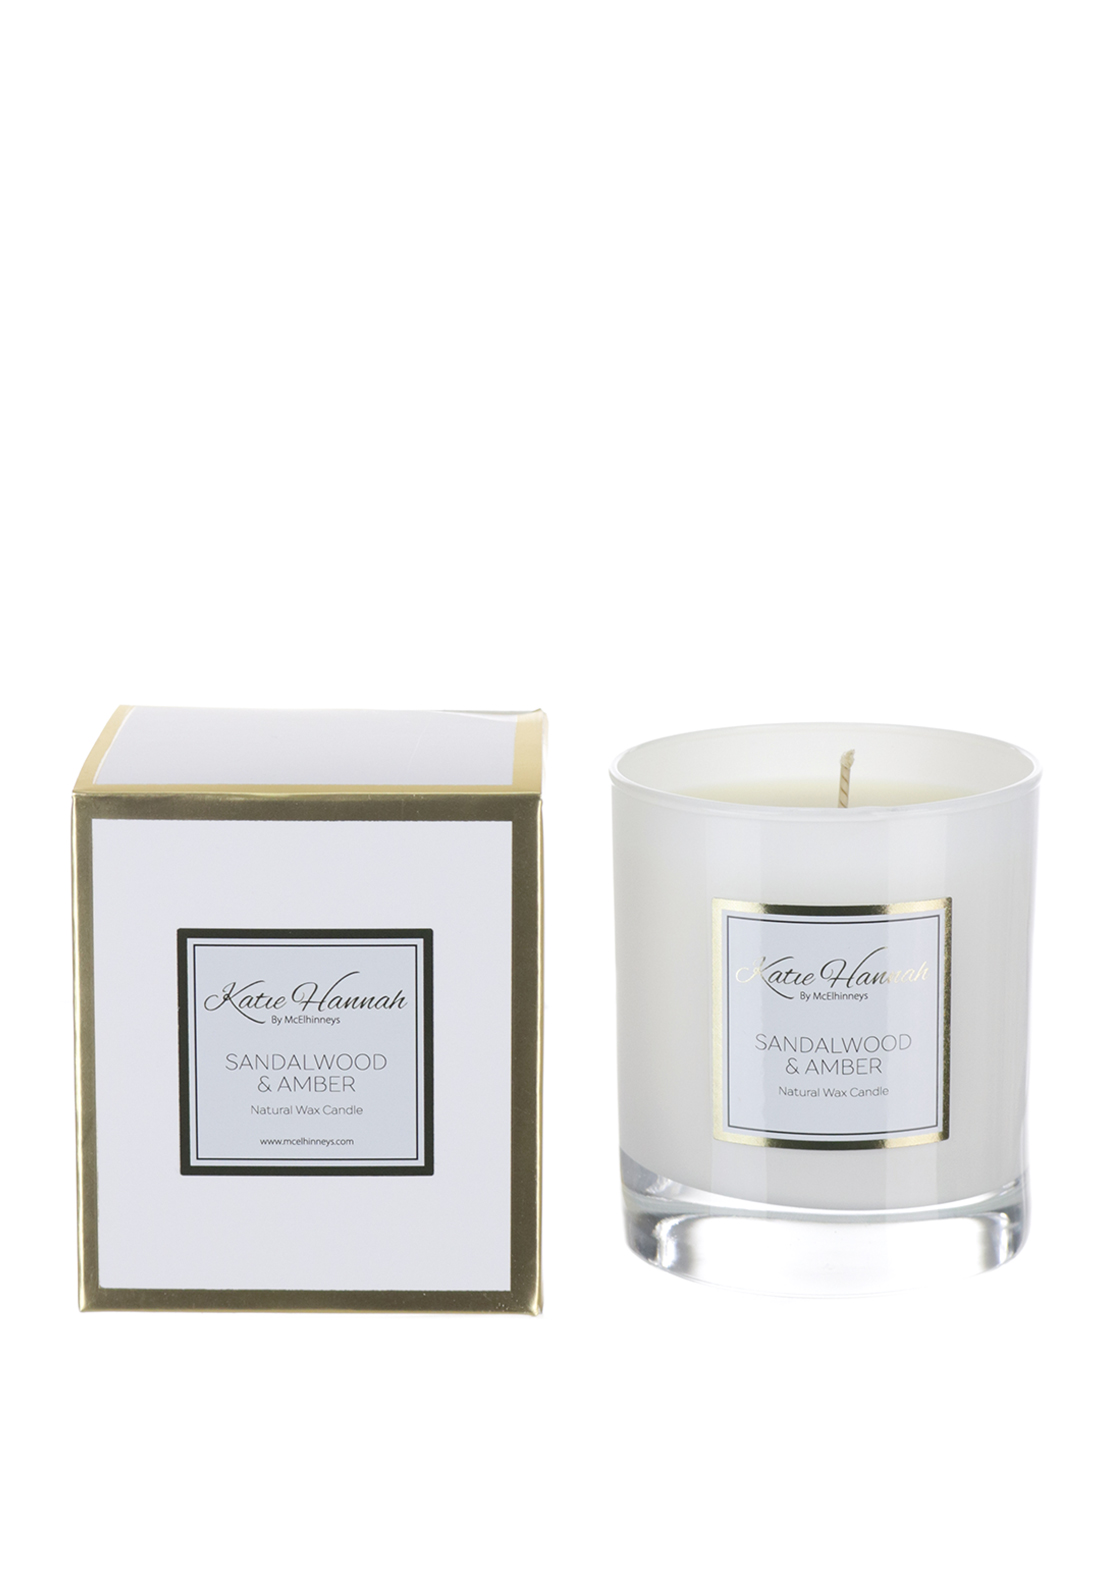 Katie Hannah By McElhinneys Sandalwood & Amber Natural Wax Candle